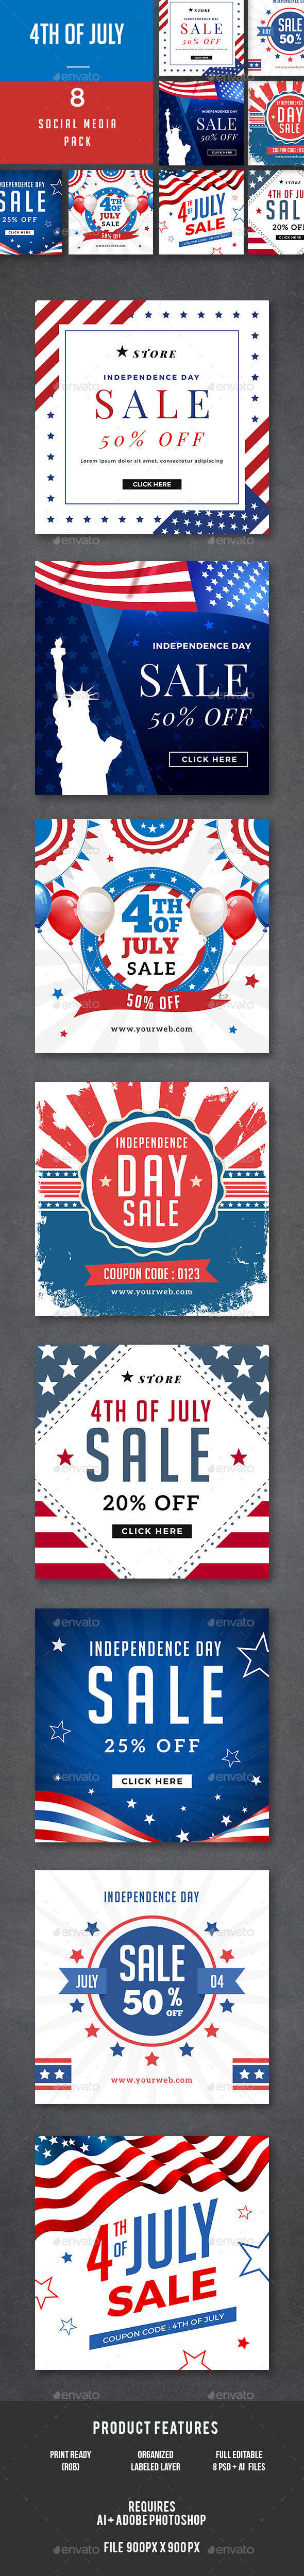 4th of July Banners - Banners & Ads Web Elements